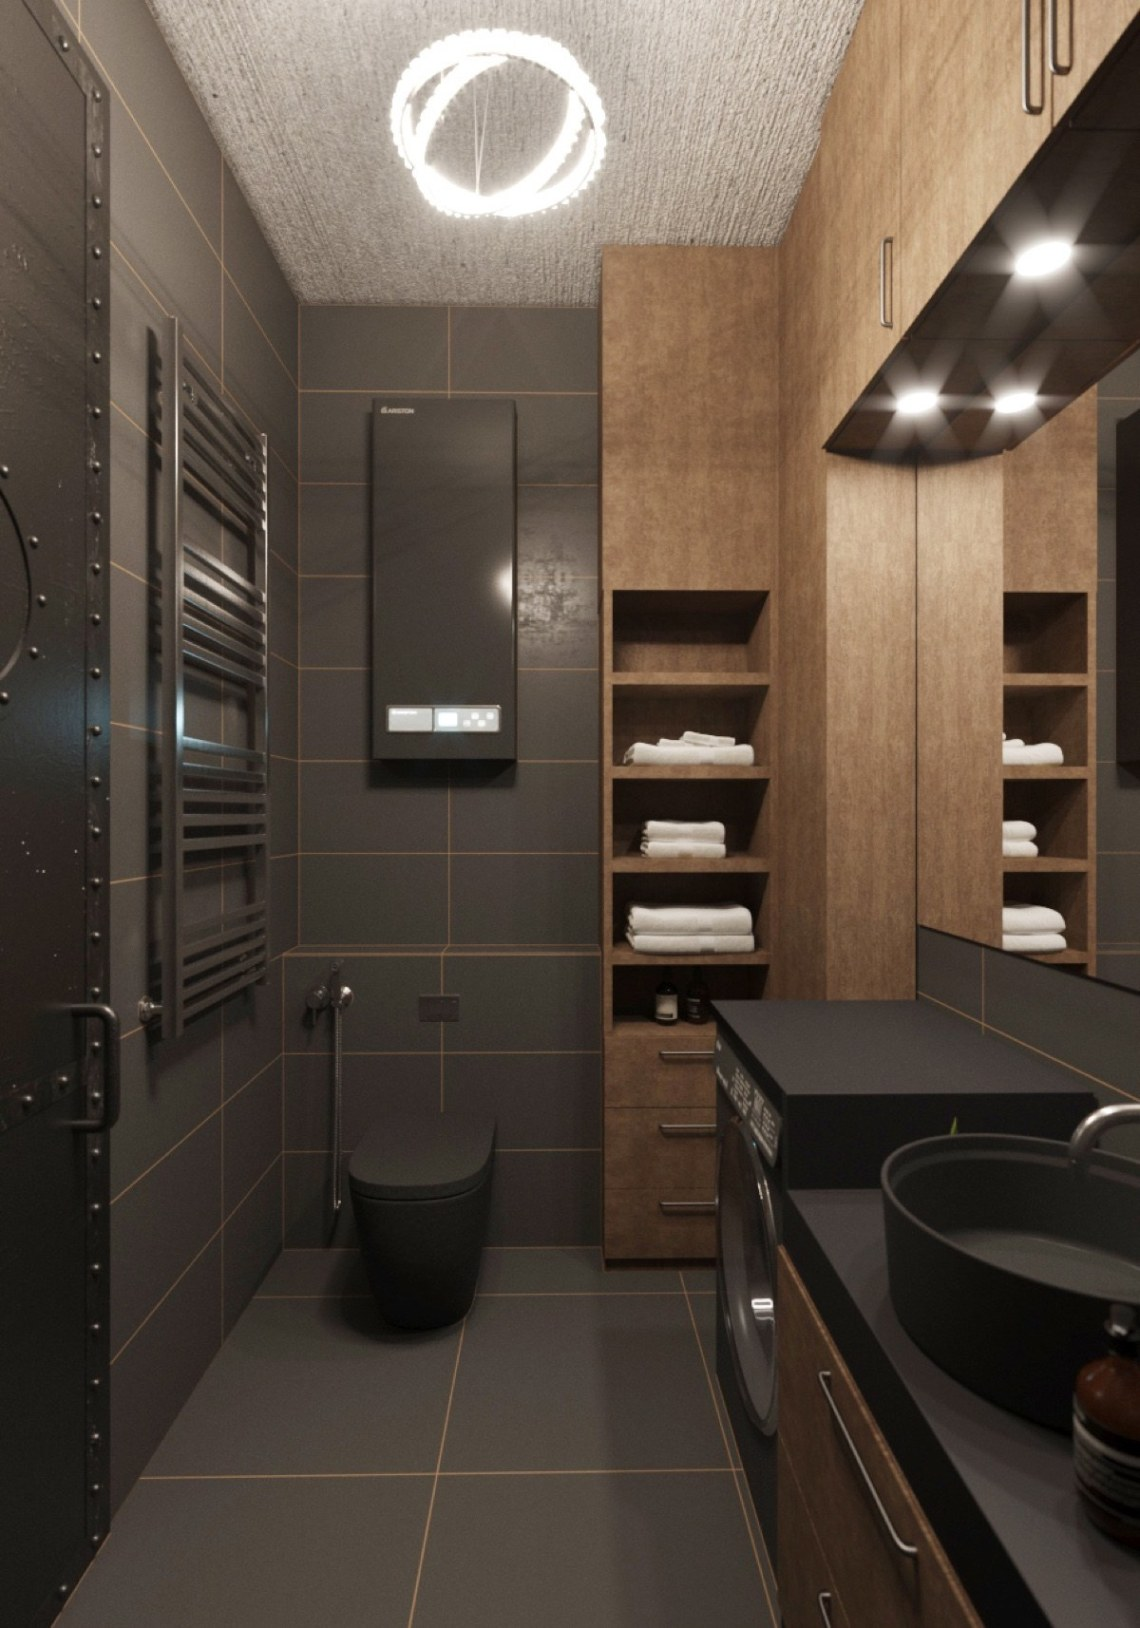 Chic Small Studio Apartment Use a Space Splendidly To Make ...